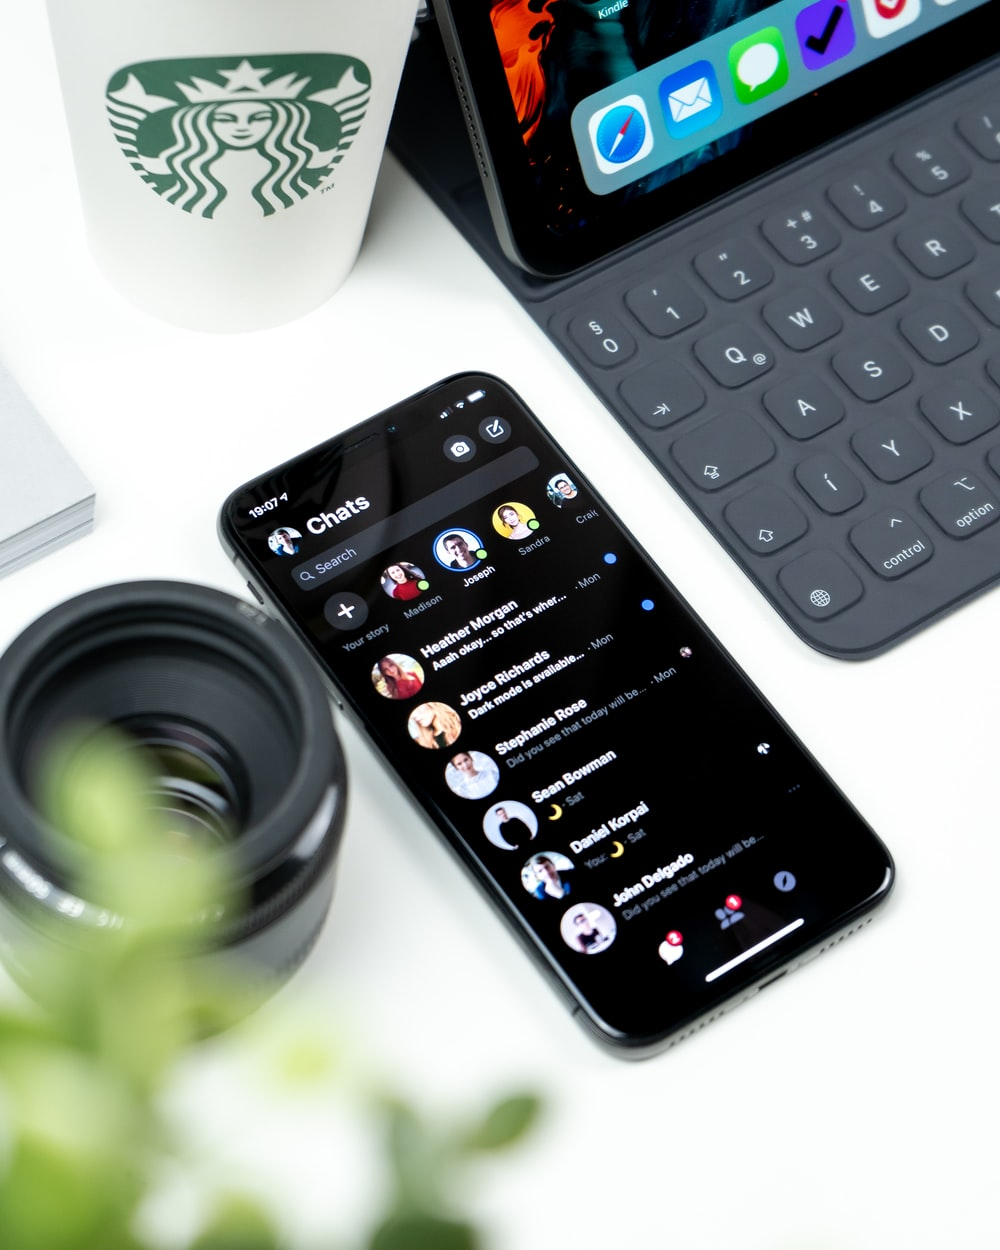 turned-on Android smartphone